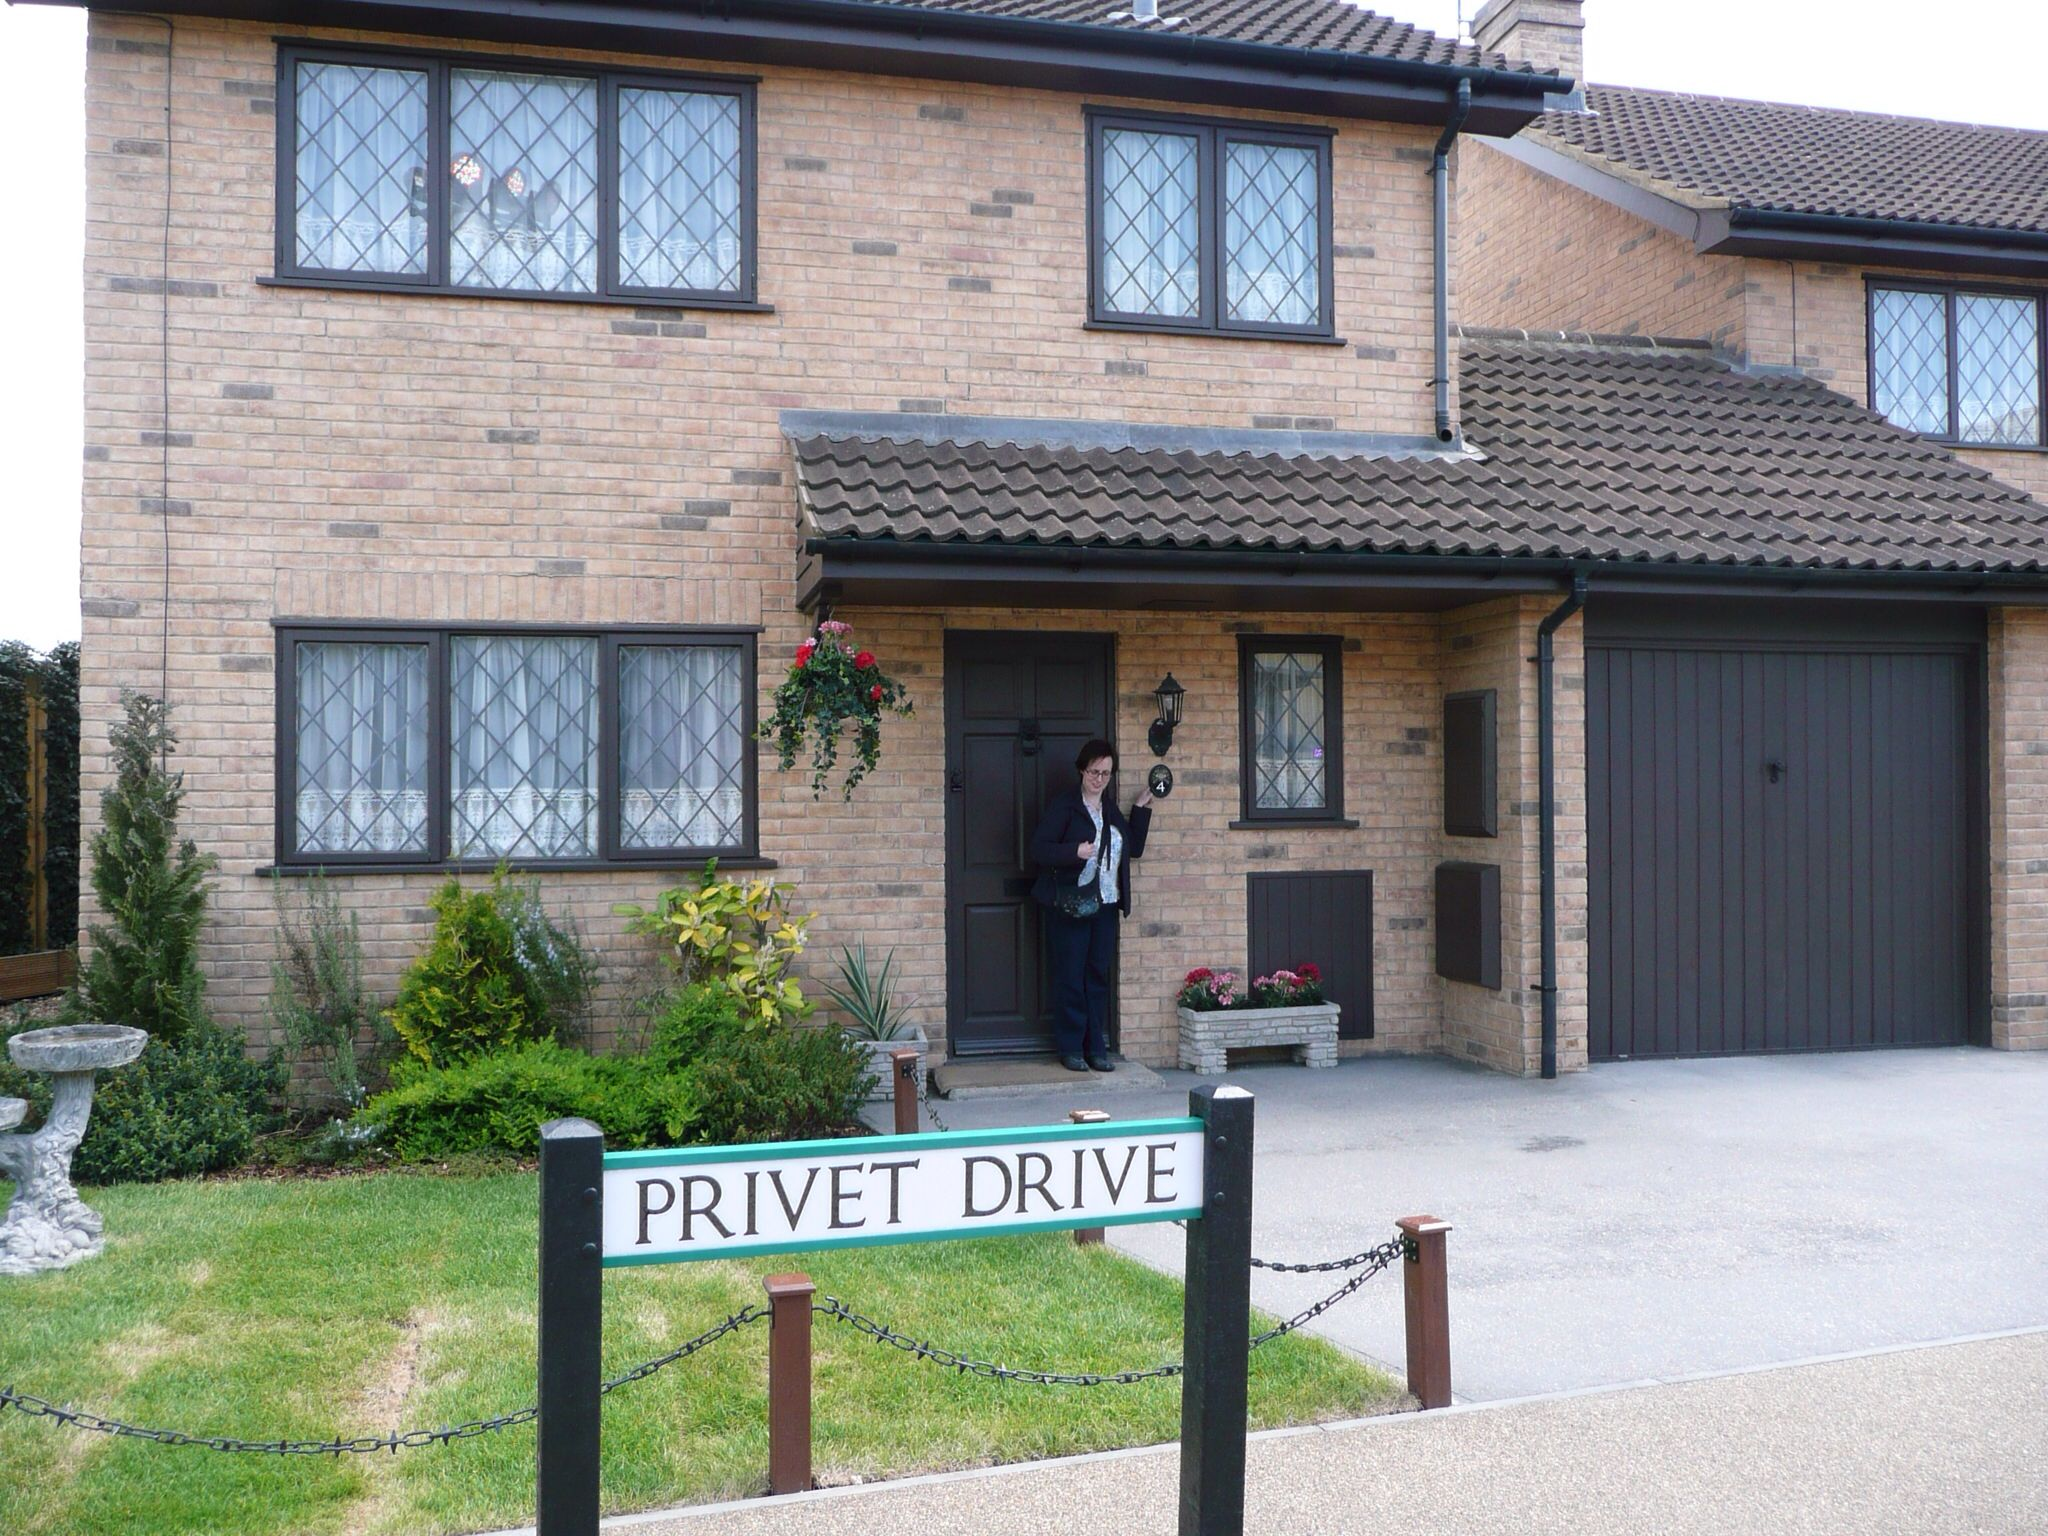 No 4 Privet Drive Little Whinging House Styles Outdoor Decor House